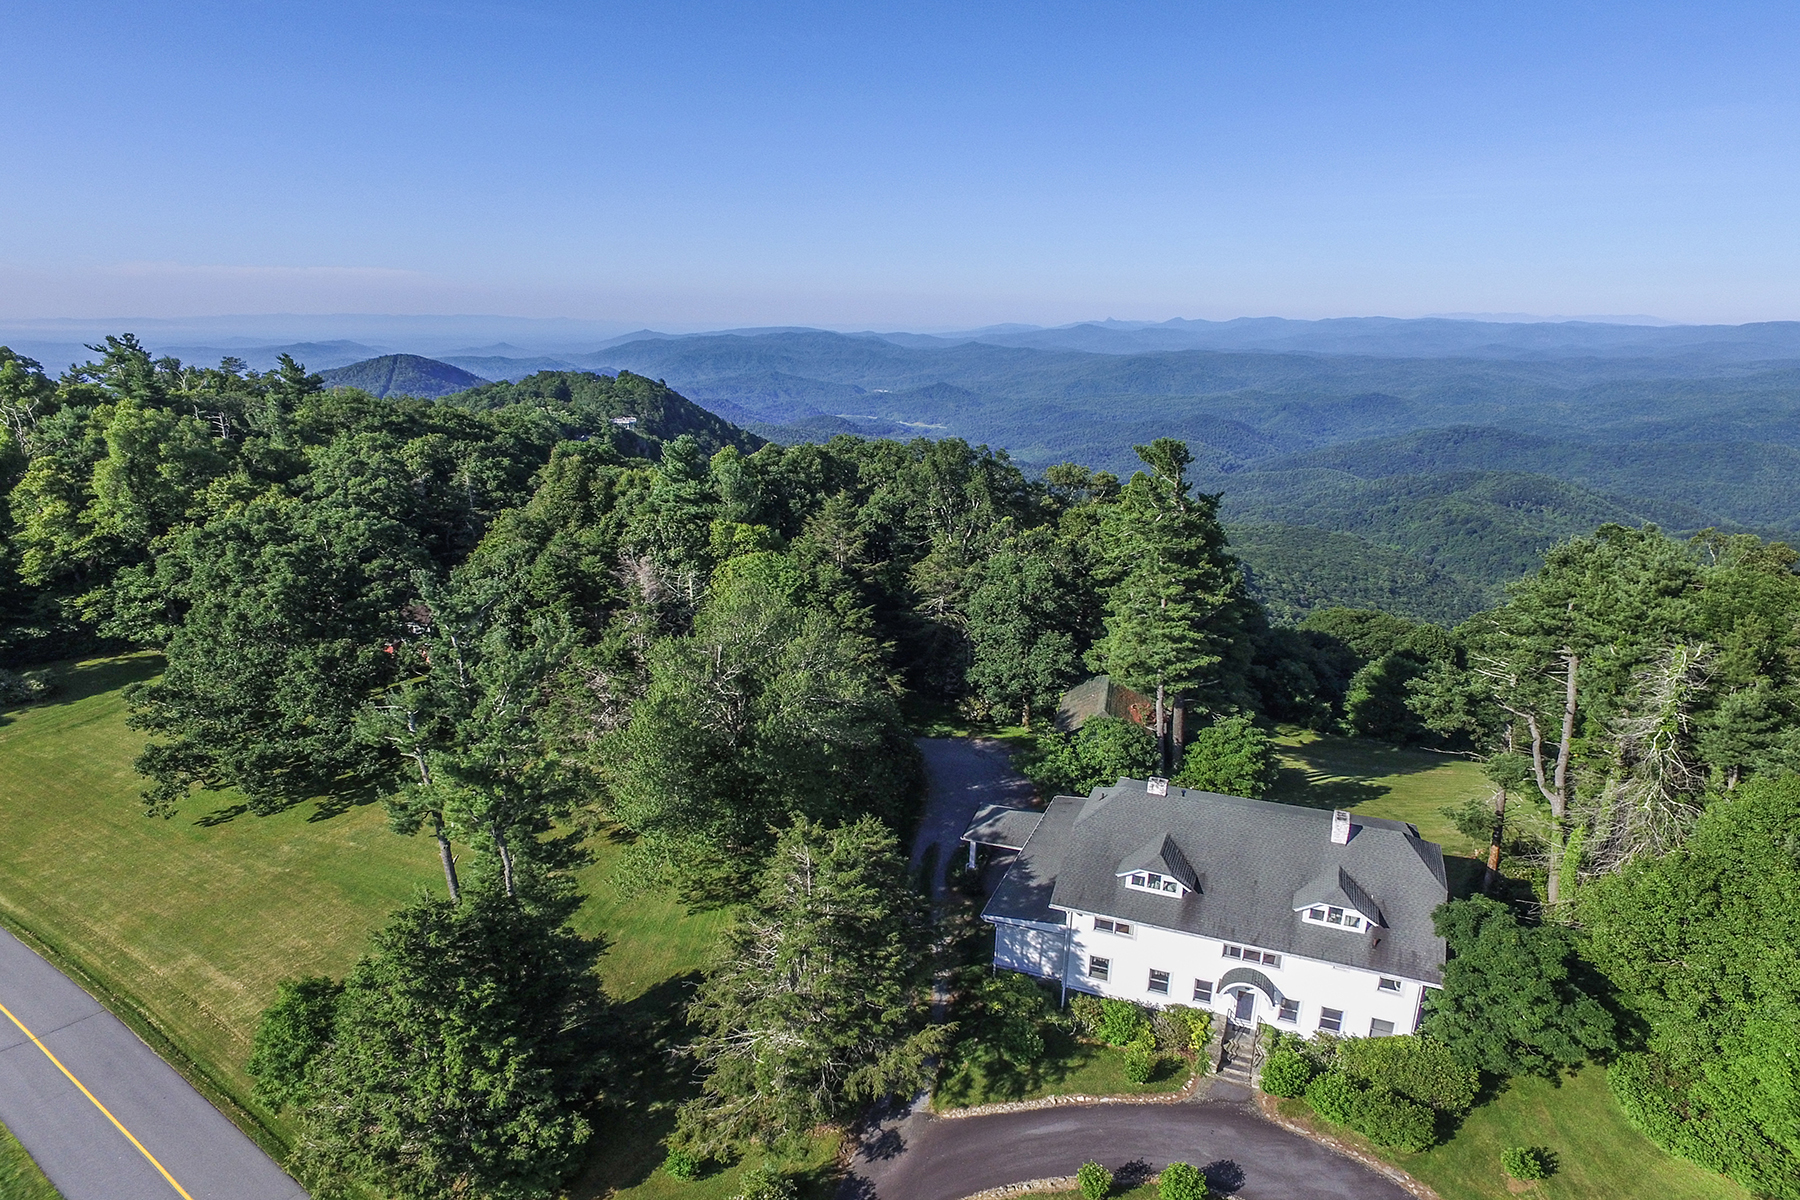 Single Family Home for Sale at CENTURY OWNED PRIVATE FAMILY ESTATE 460/514 Pinnacle Ave, Blowing Rock, North Carolina 28605 United States